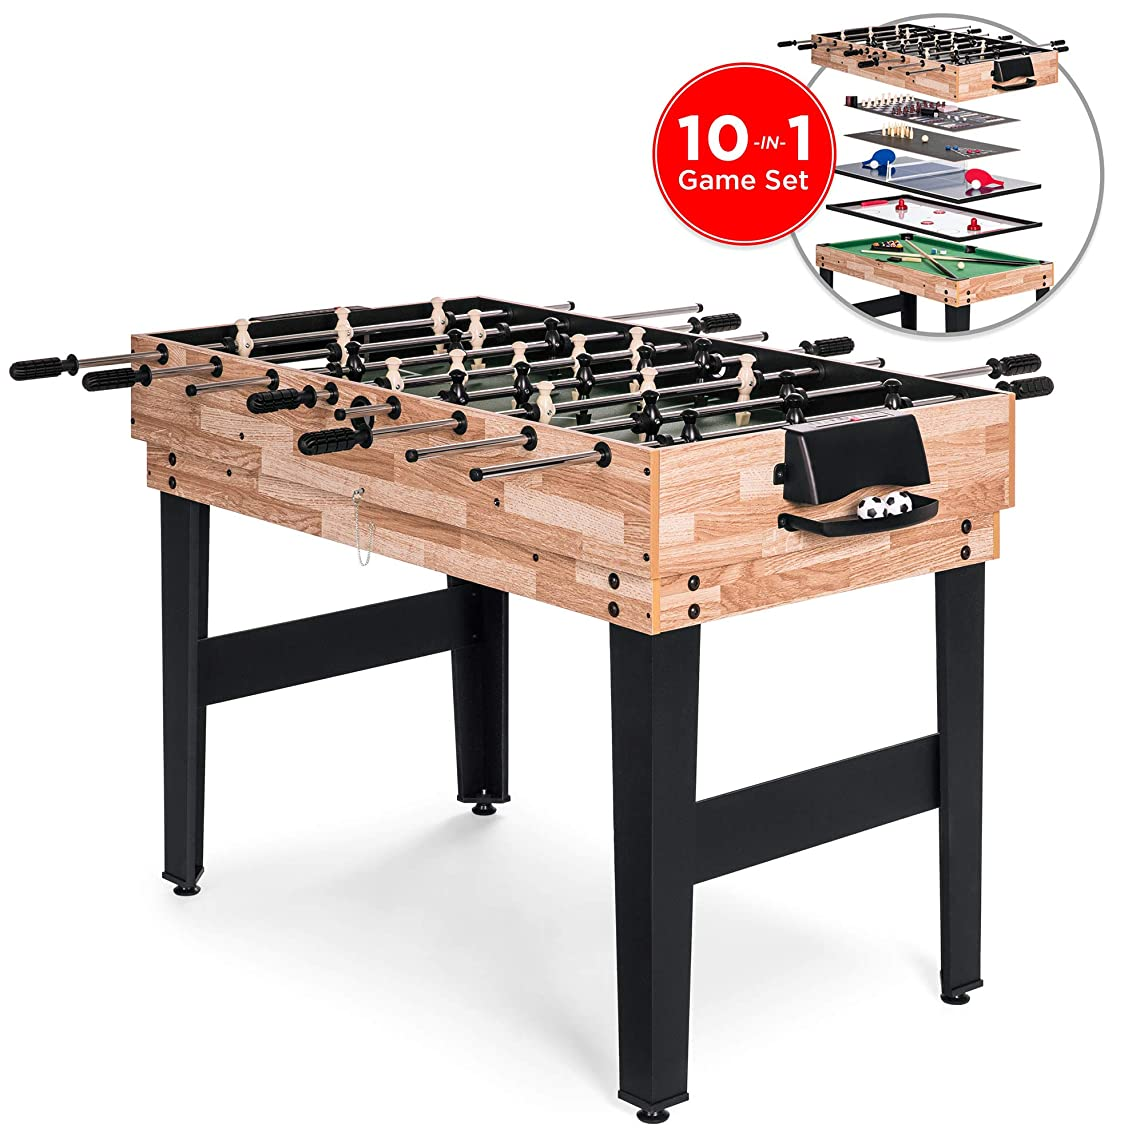 Best Choice Products 2x4ft 10-in-1 Combination Interchangeable Game Table Set w/Billiards, Foosball, Ping Pong, Push Hockey, Chess, Checkers, Bowling, Shuffleboard, Backgammon, Cards